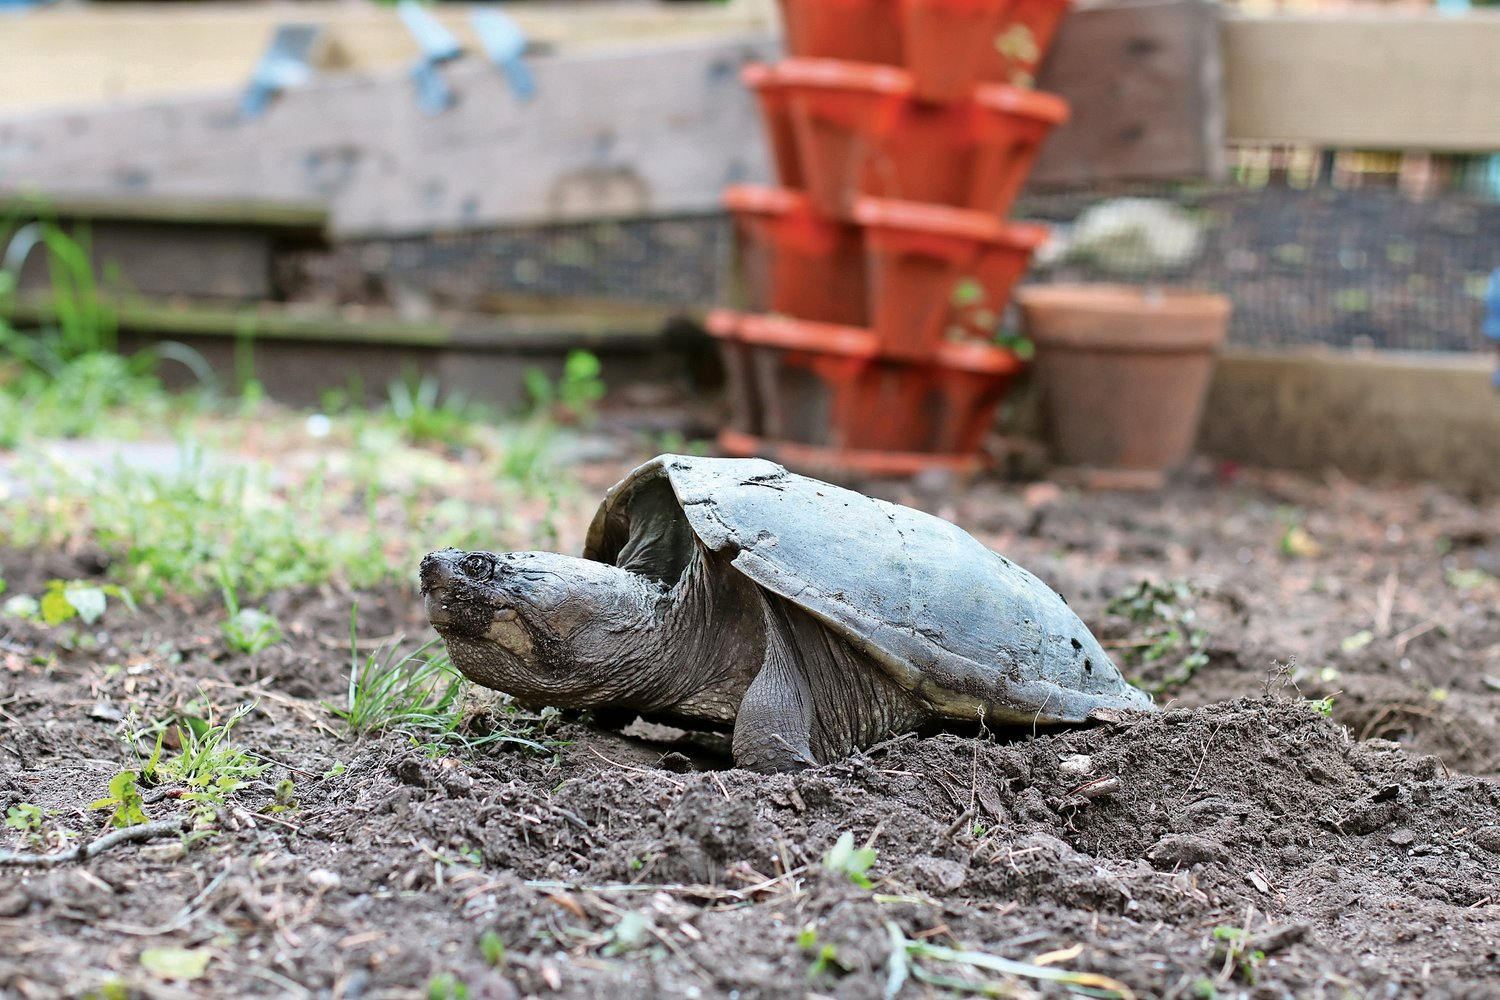 The mother turtle initially laid the eggs in Christine Reidy's side yard in June.